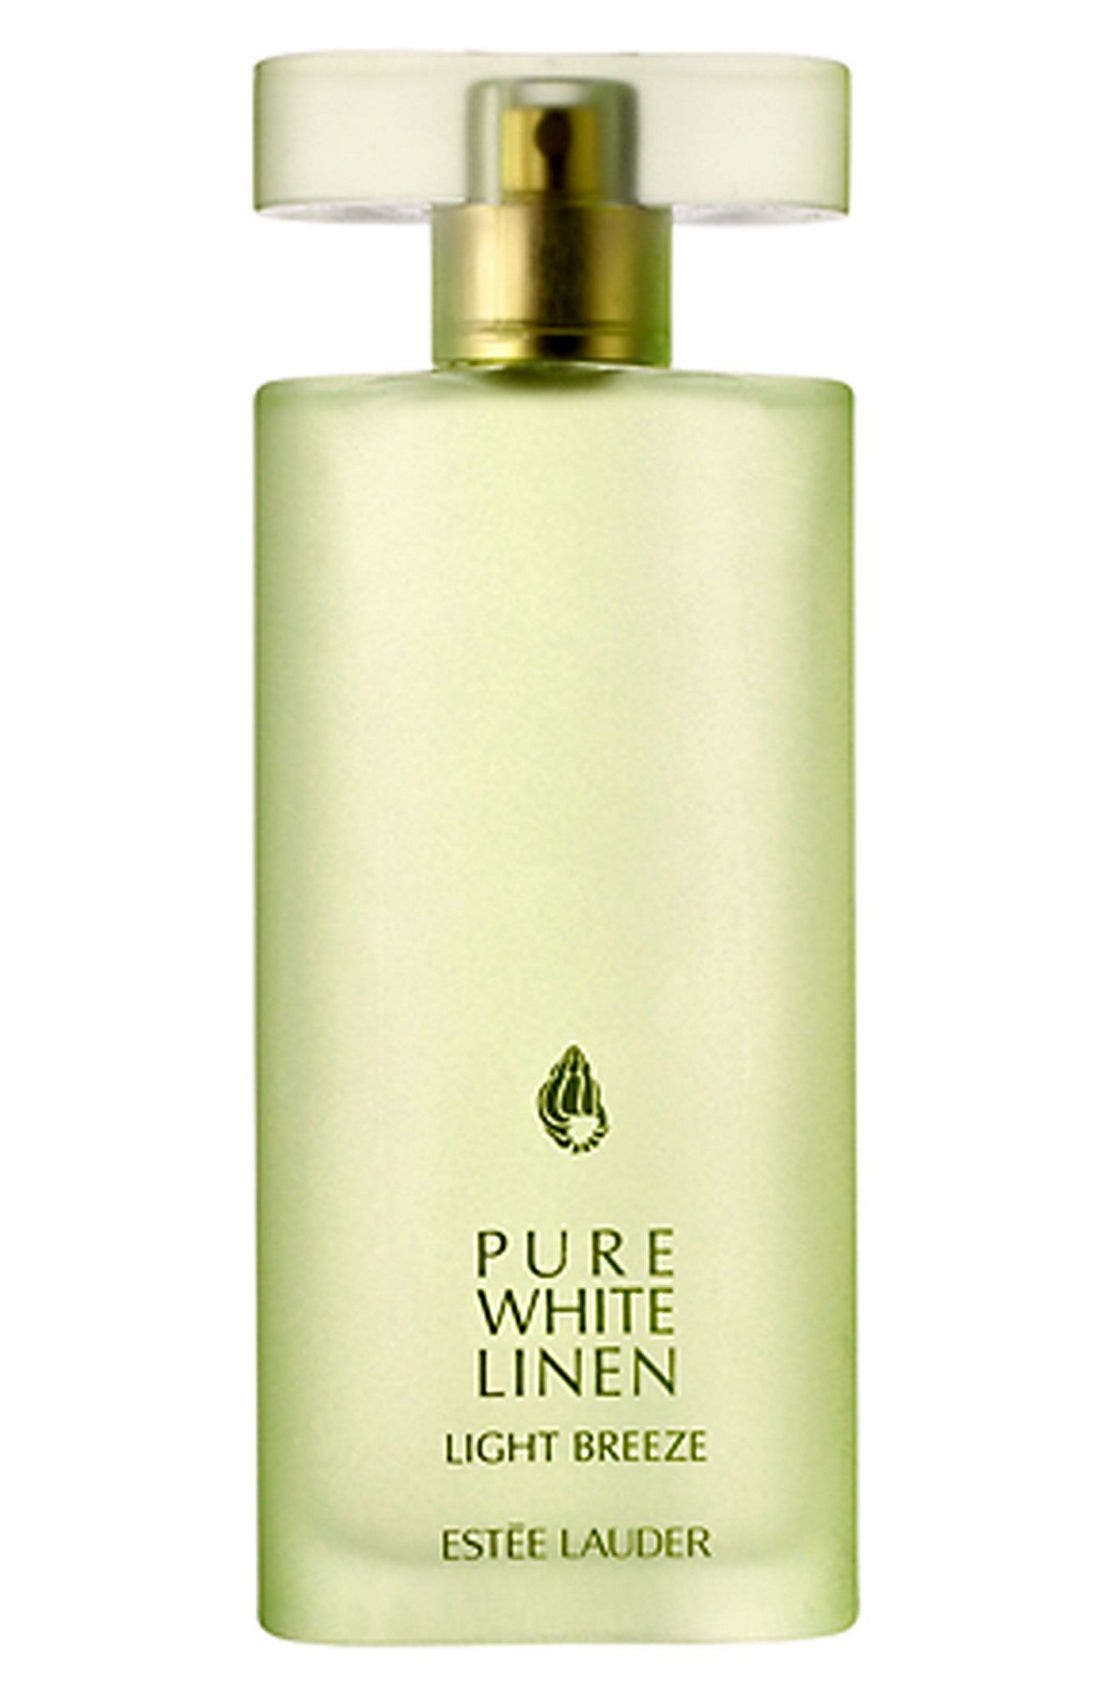 Estée Lauder Pure White Linen - Light Breeze Eau de Parfum Spray